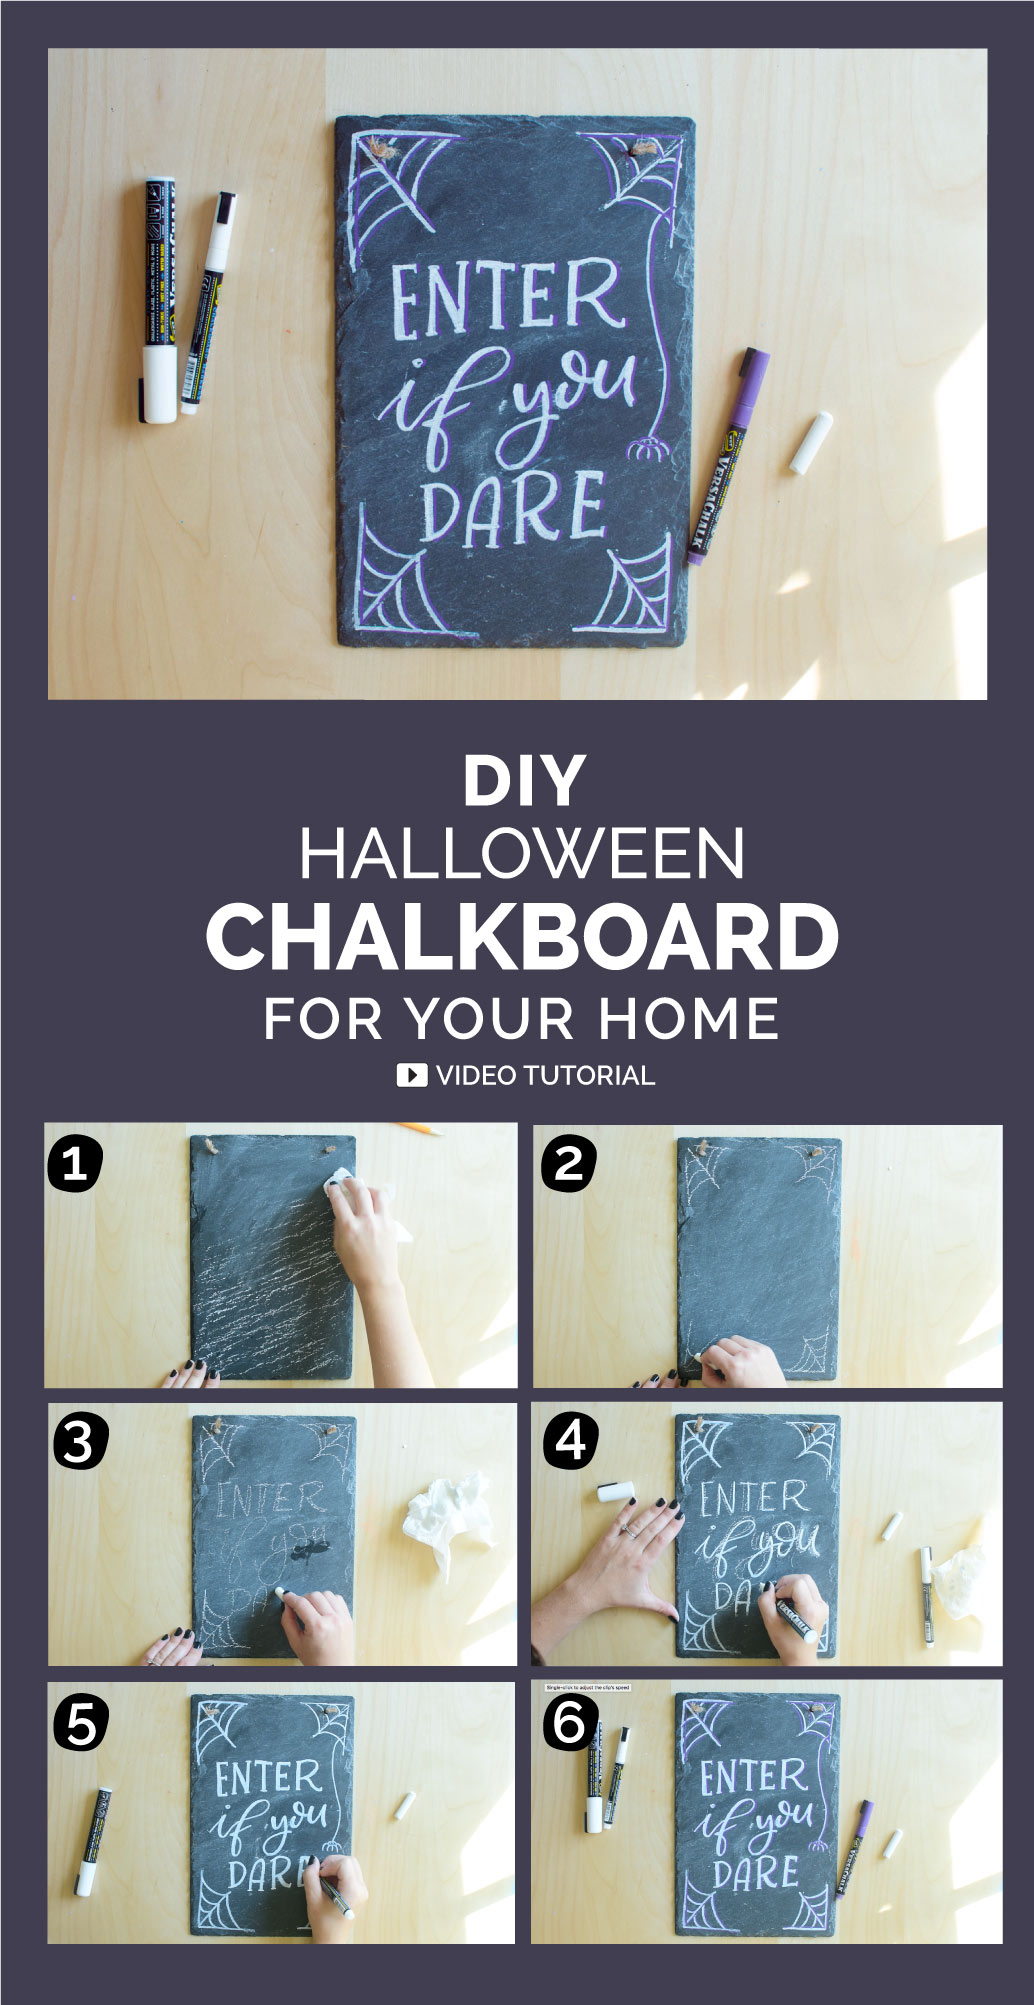 Make your own halloween door hanger. All you need is a chalkboard and chalk markers and your imagination. Follow these six steps to create this hand lettered chalkboard sign.